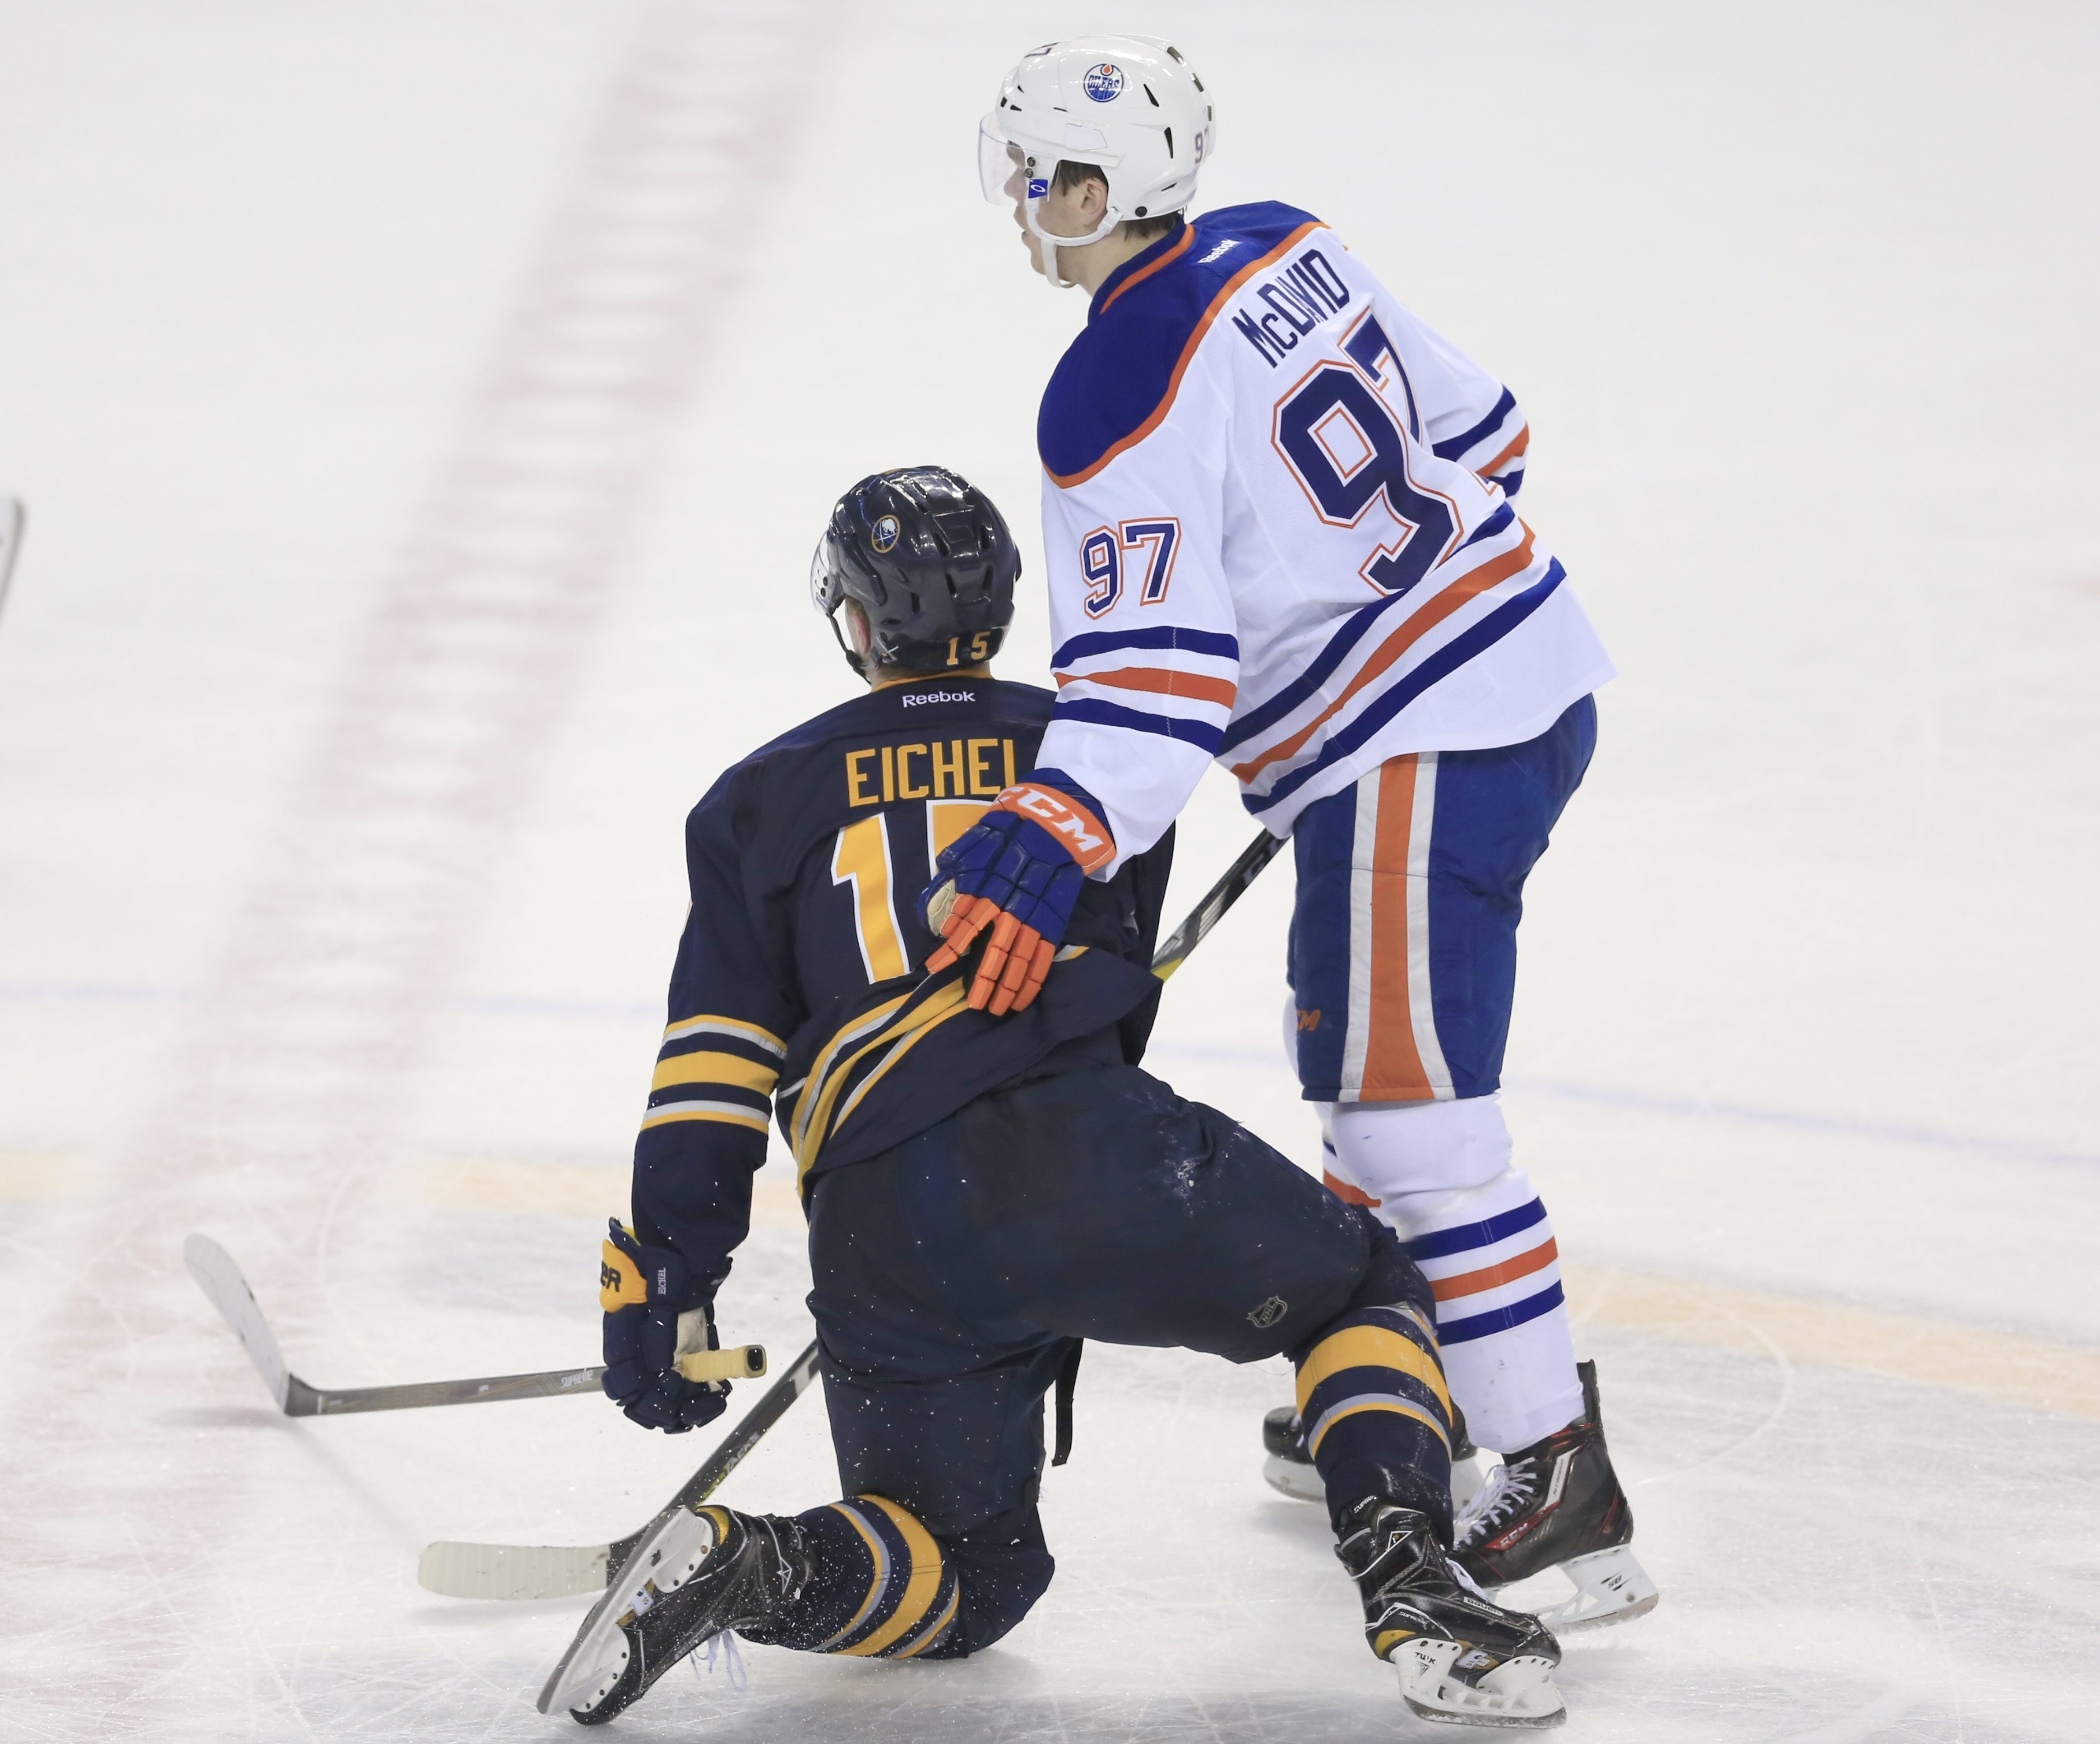 Bringing back the red line would help skill players like Buffalo's Jack Eichel from getting hurt over the middle.